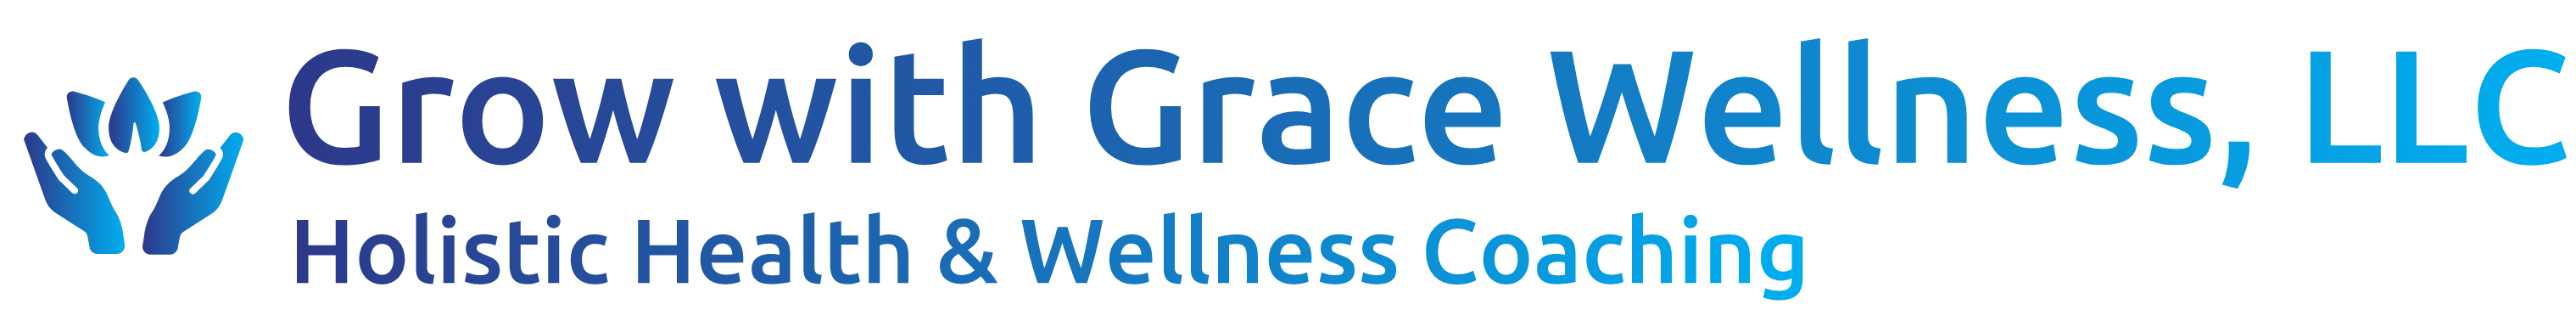 Grow With Grace Wellness – Holistic Health & Wellness Coaching